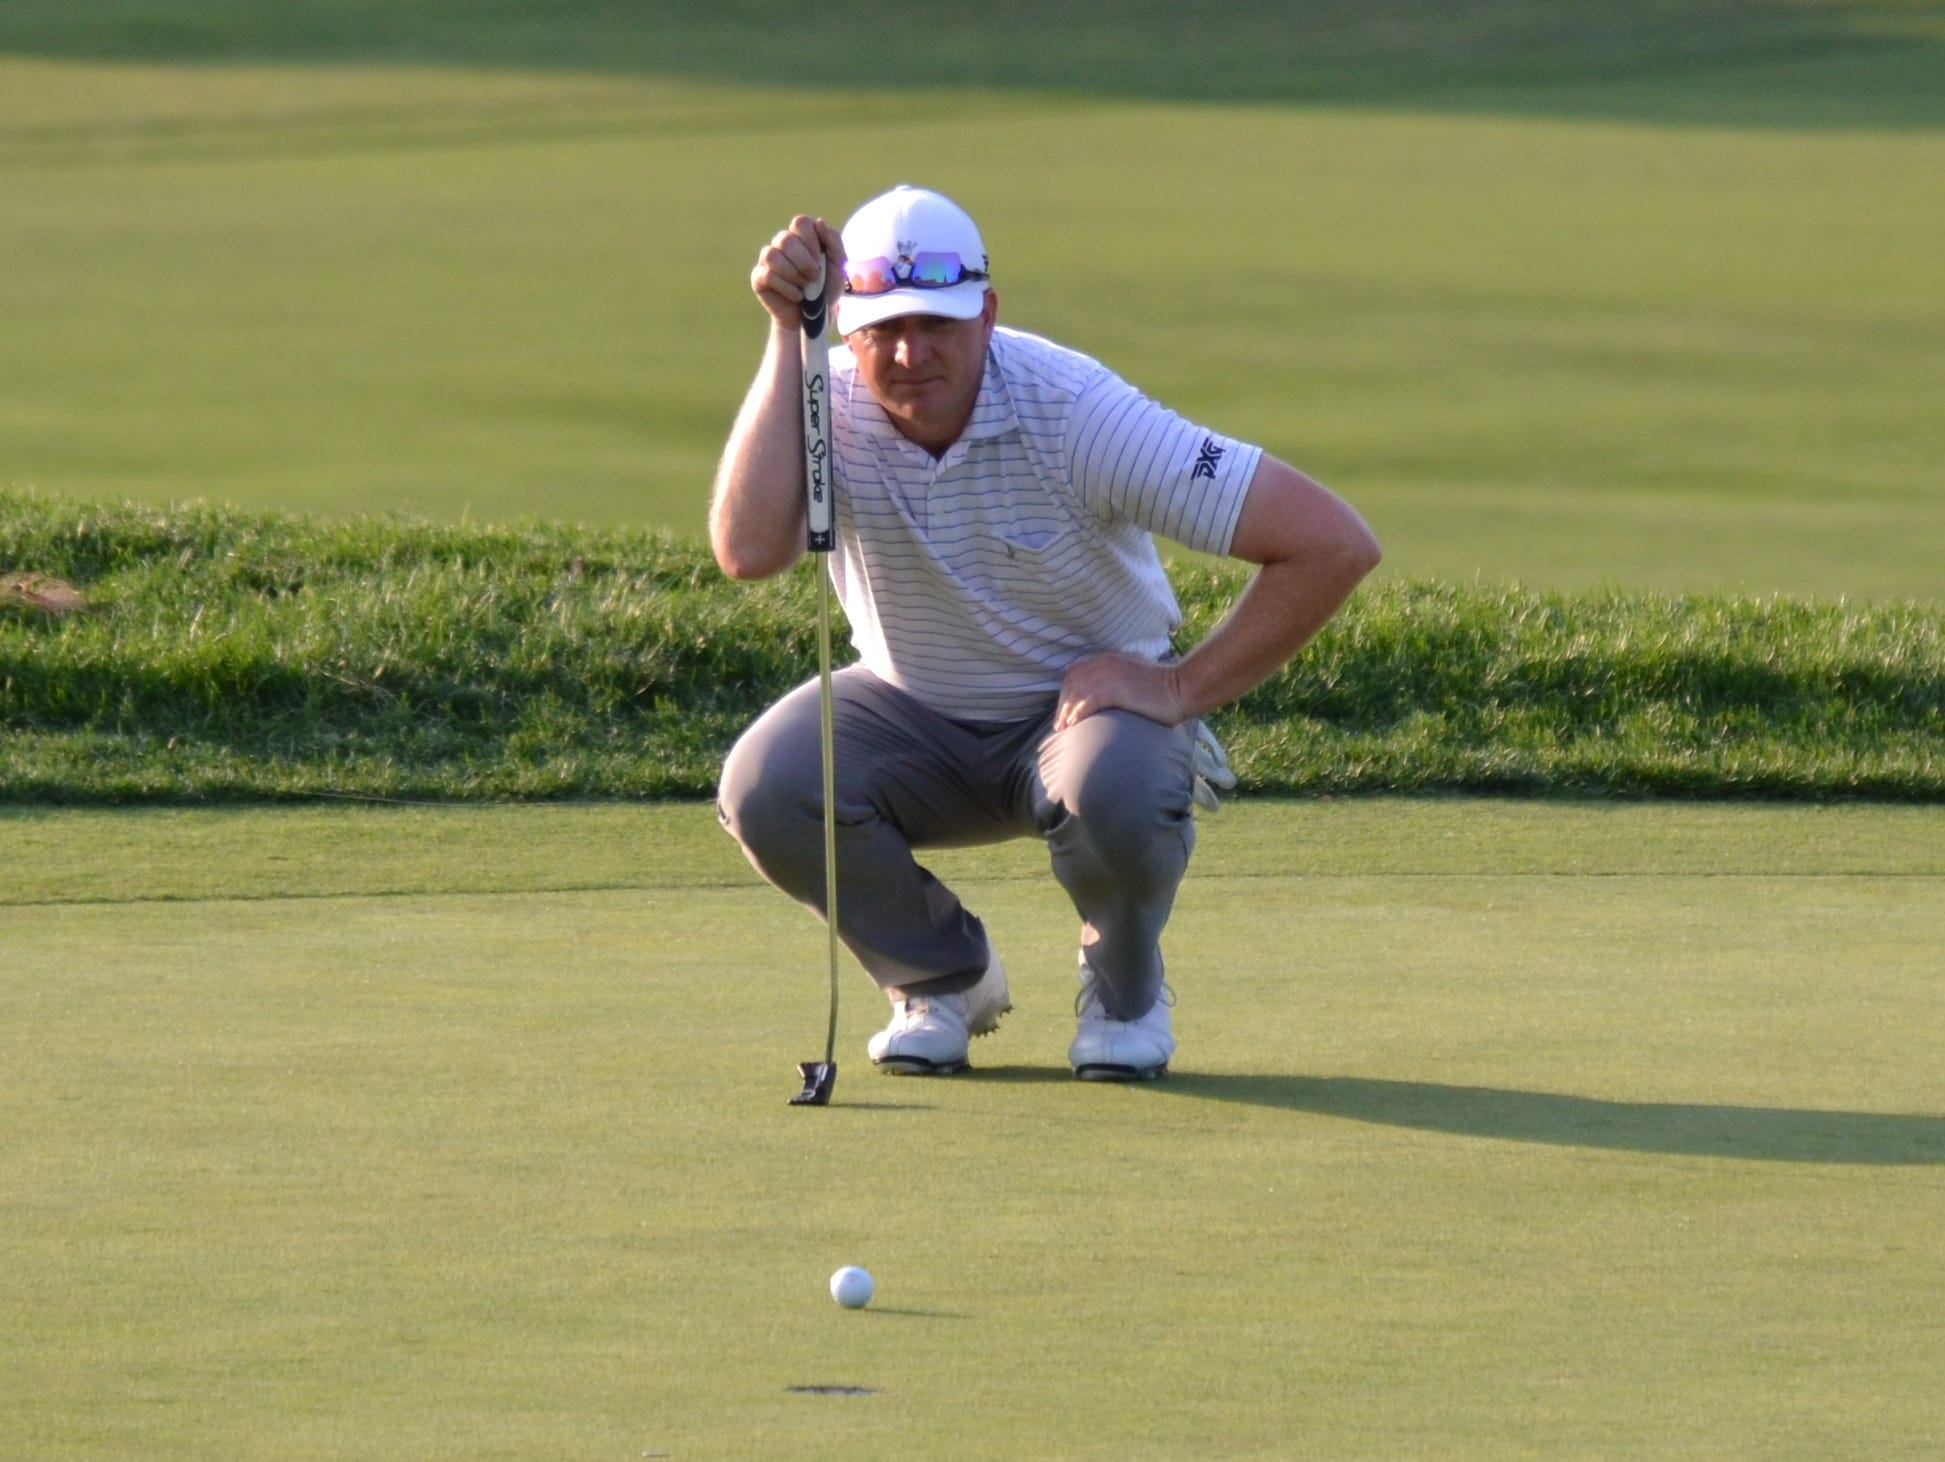 Winged Foot assistant Grant Sturgeon takes a quick look at a bogey putt on the 18th green of the Black Course at Bethpage State Park. He shot a 75 in the second round of the state open Wednesday and is tied for 21st.